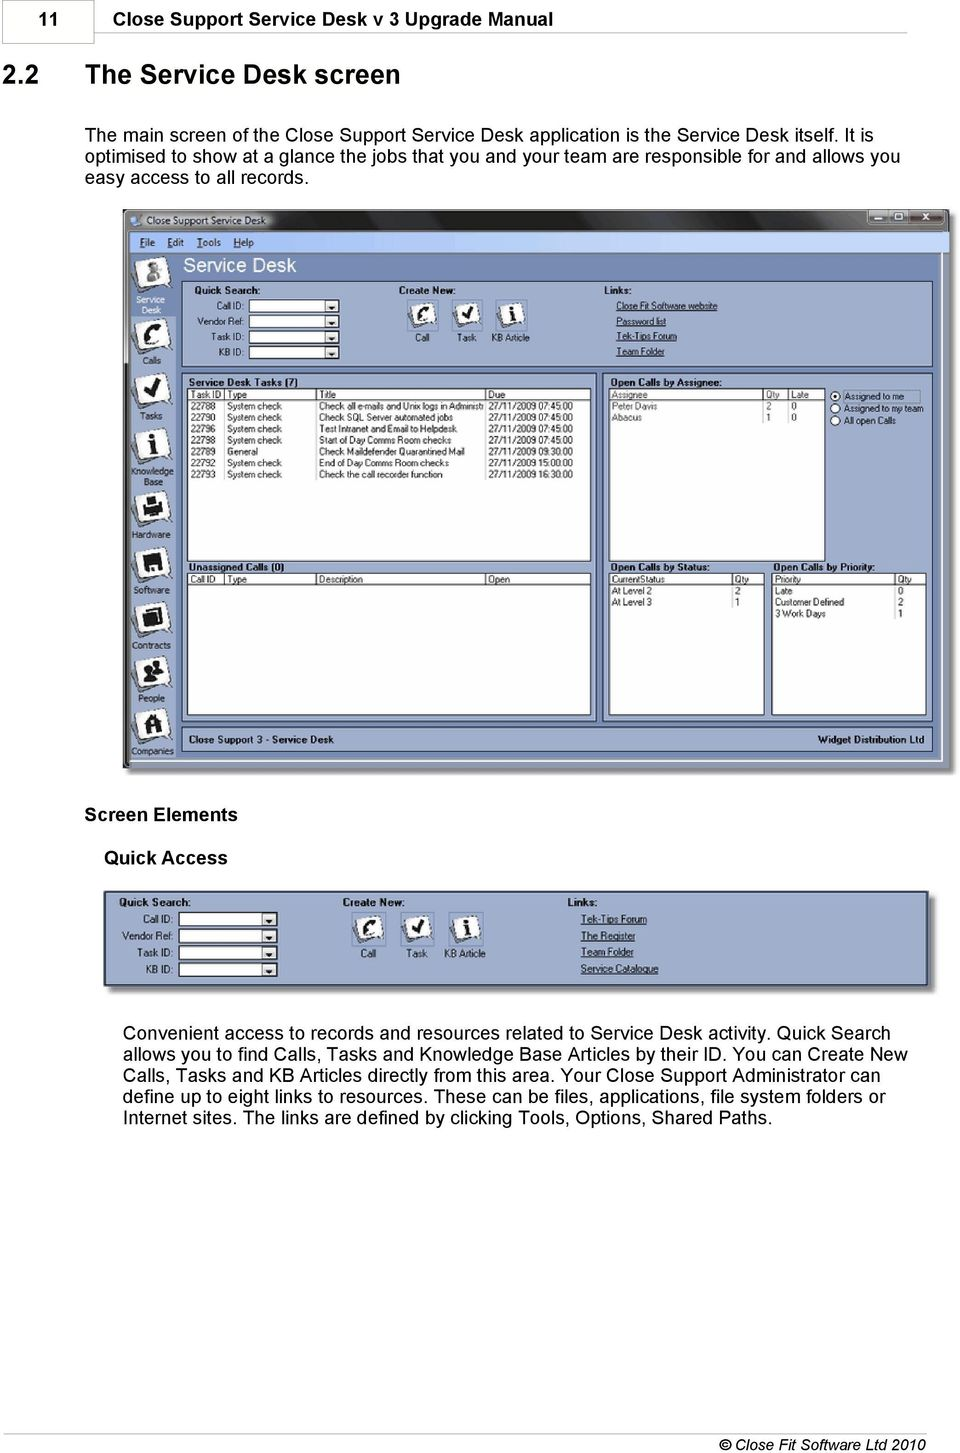 Screen Elements Quick Access Convenient access to records and resources related to Service Desk activity. Quick Search allows you to find Calls, Tasks and Knowledge Base Articles by their ID.